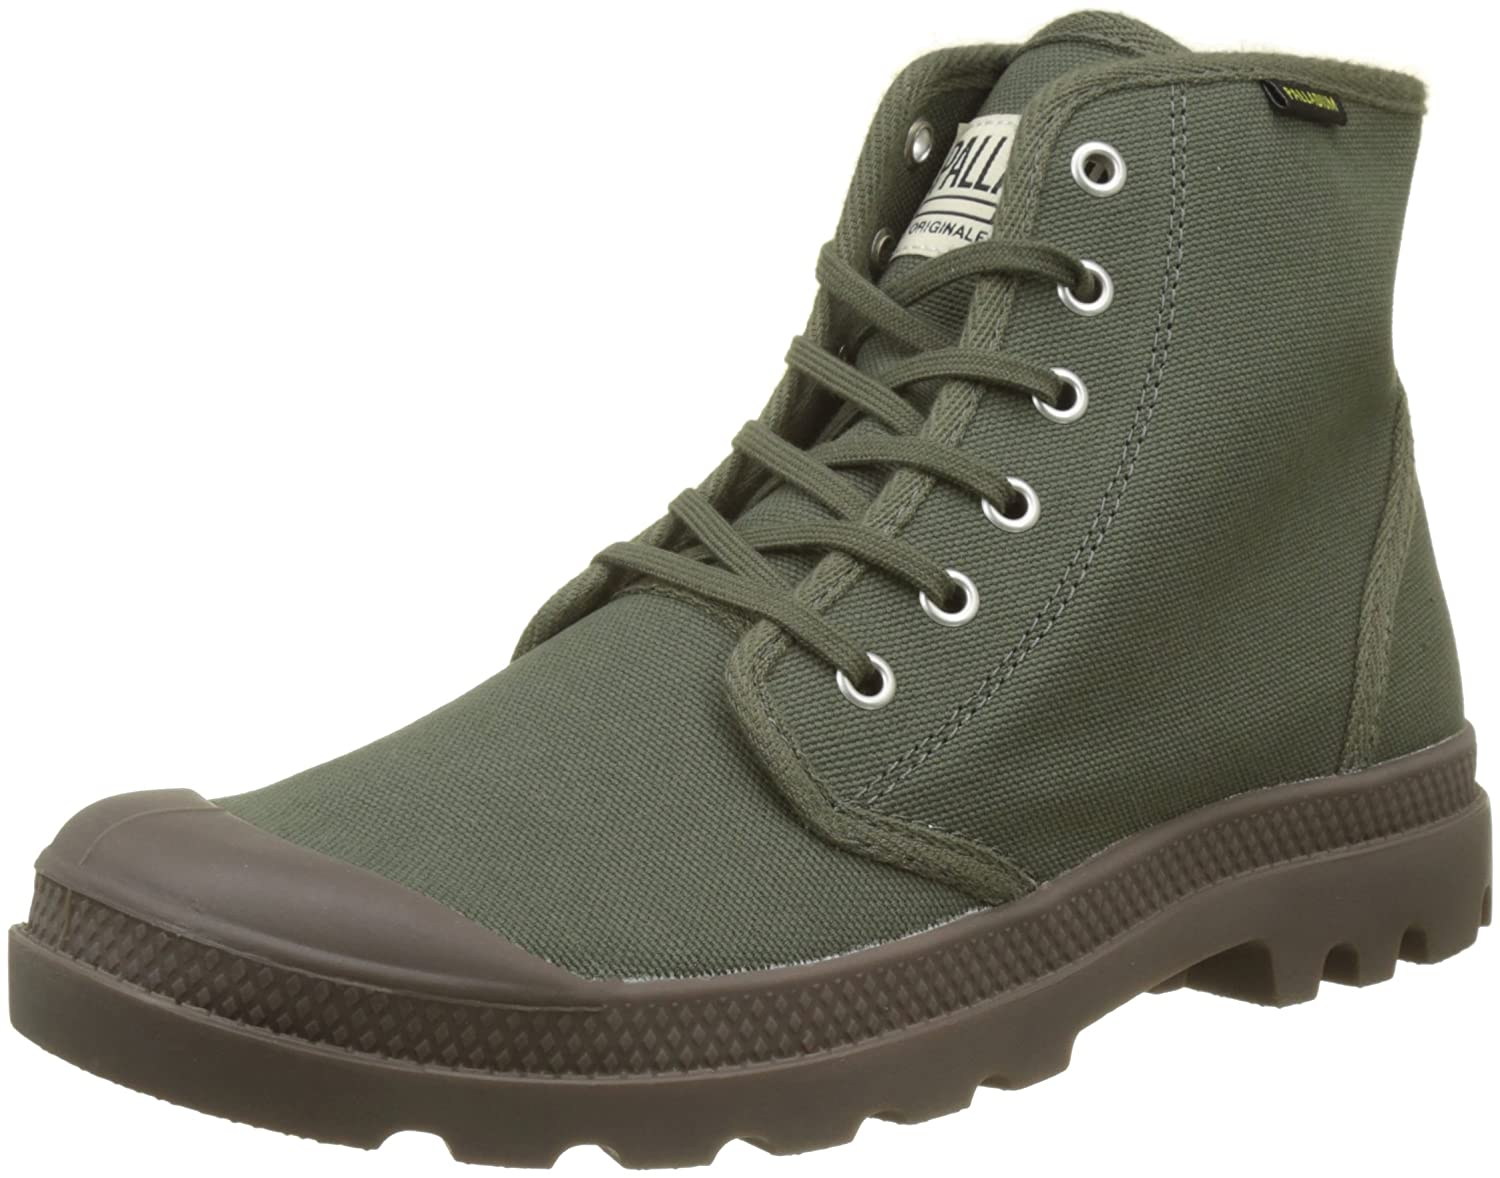 Palladium Pampa Hi Originale, Zapatillas Altas Unisex Adulto